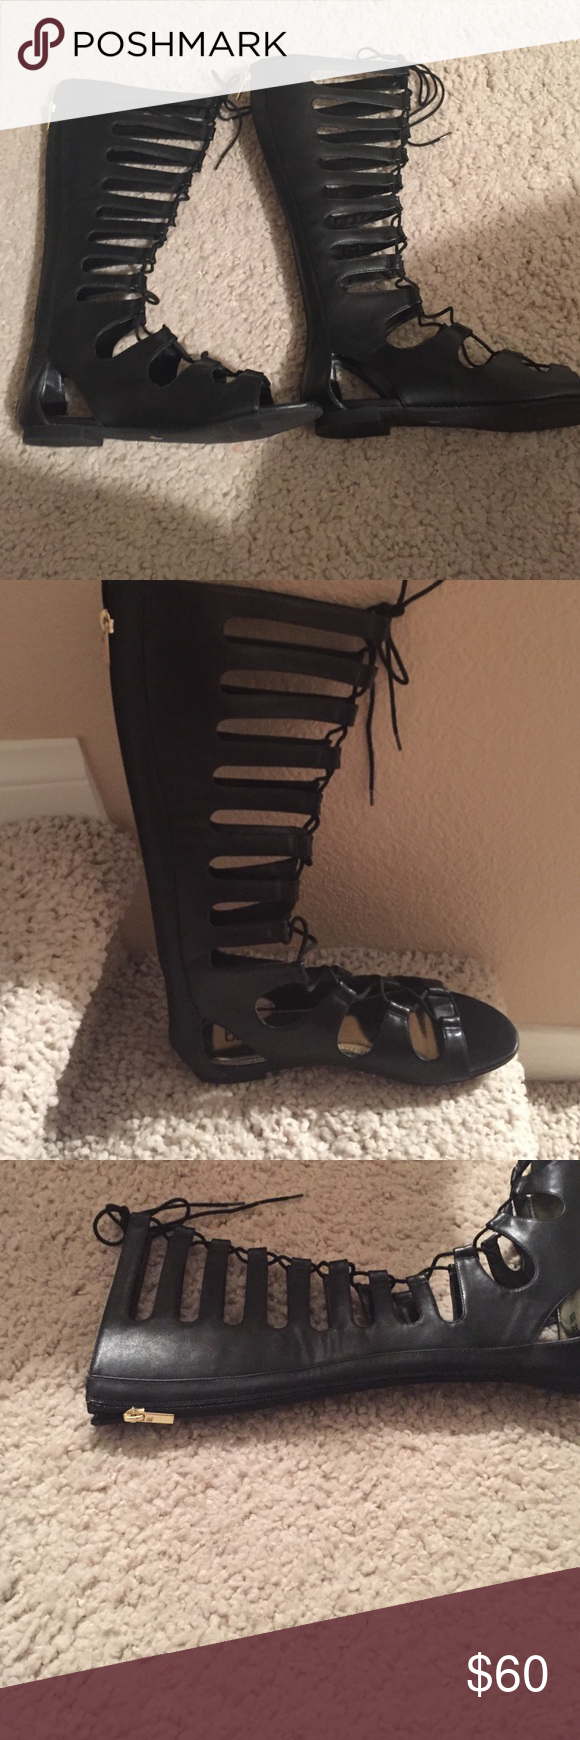 BAR111 gladiator sandals Gladiator sandals! Worn once! I can't wear flats anymore!😟 These are so cute! Can be worn with shorts. Skirts, summer dresses! I have even seen them being paired with bathing suits!! In excellent condition! Bar III Shoes Sandals